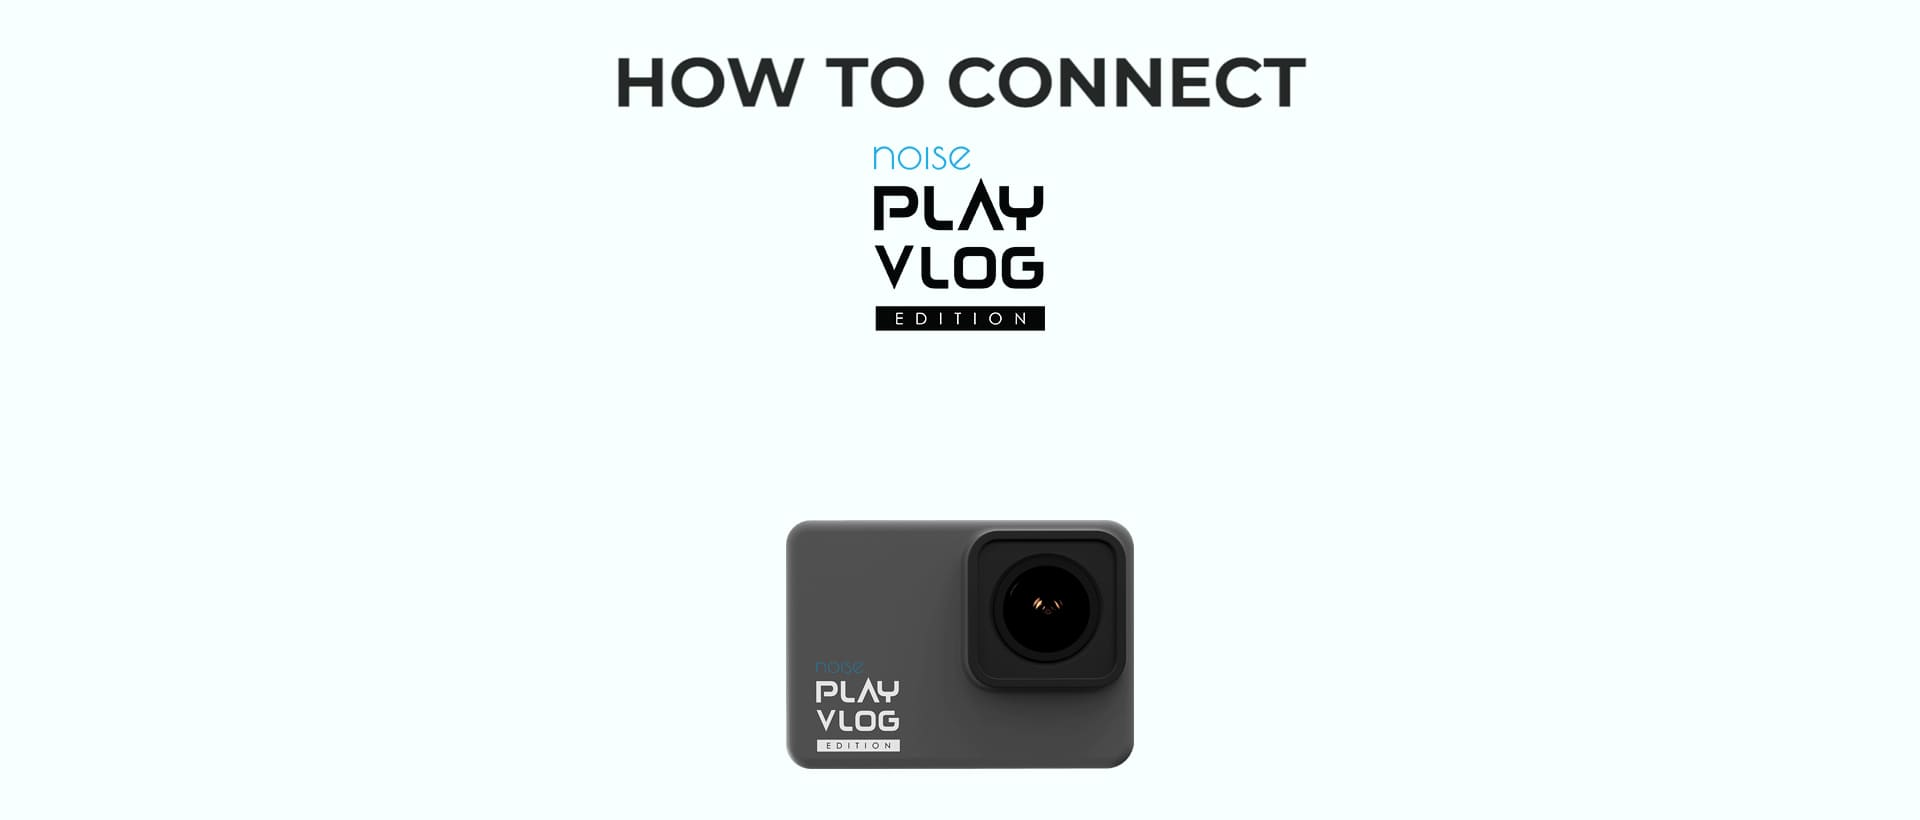 Noise Plav Vlog action camera how to use video thumbnail desktop